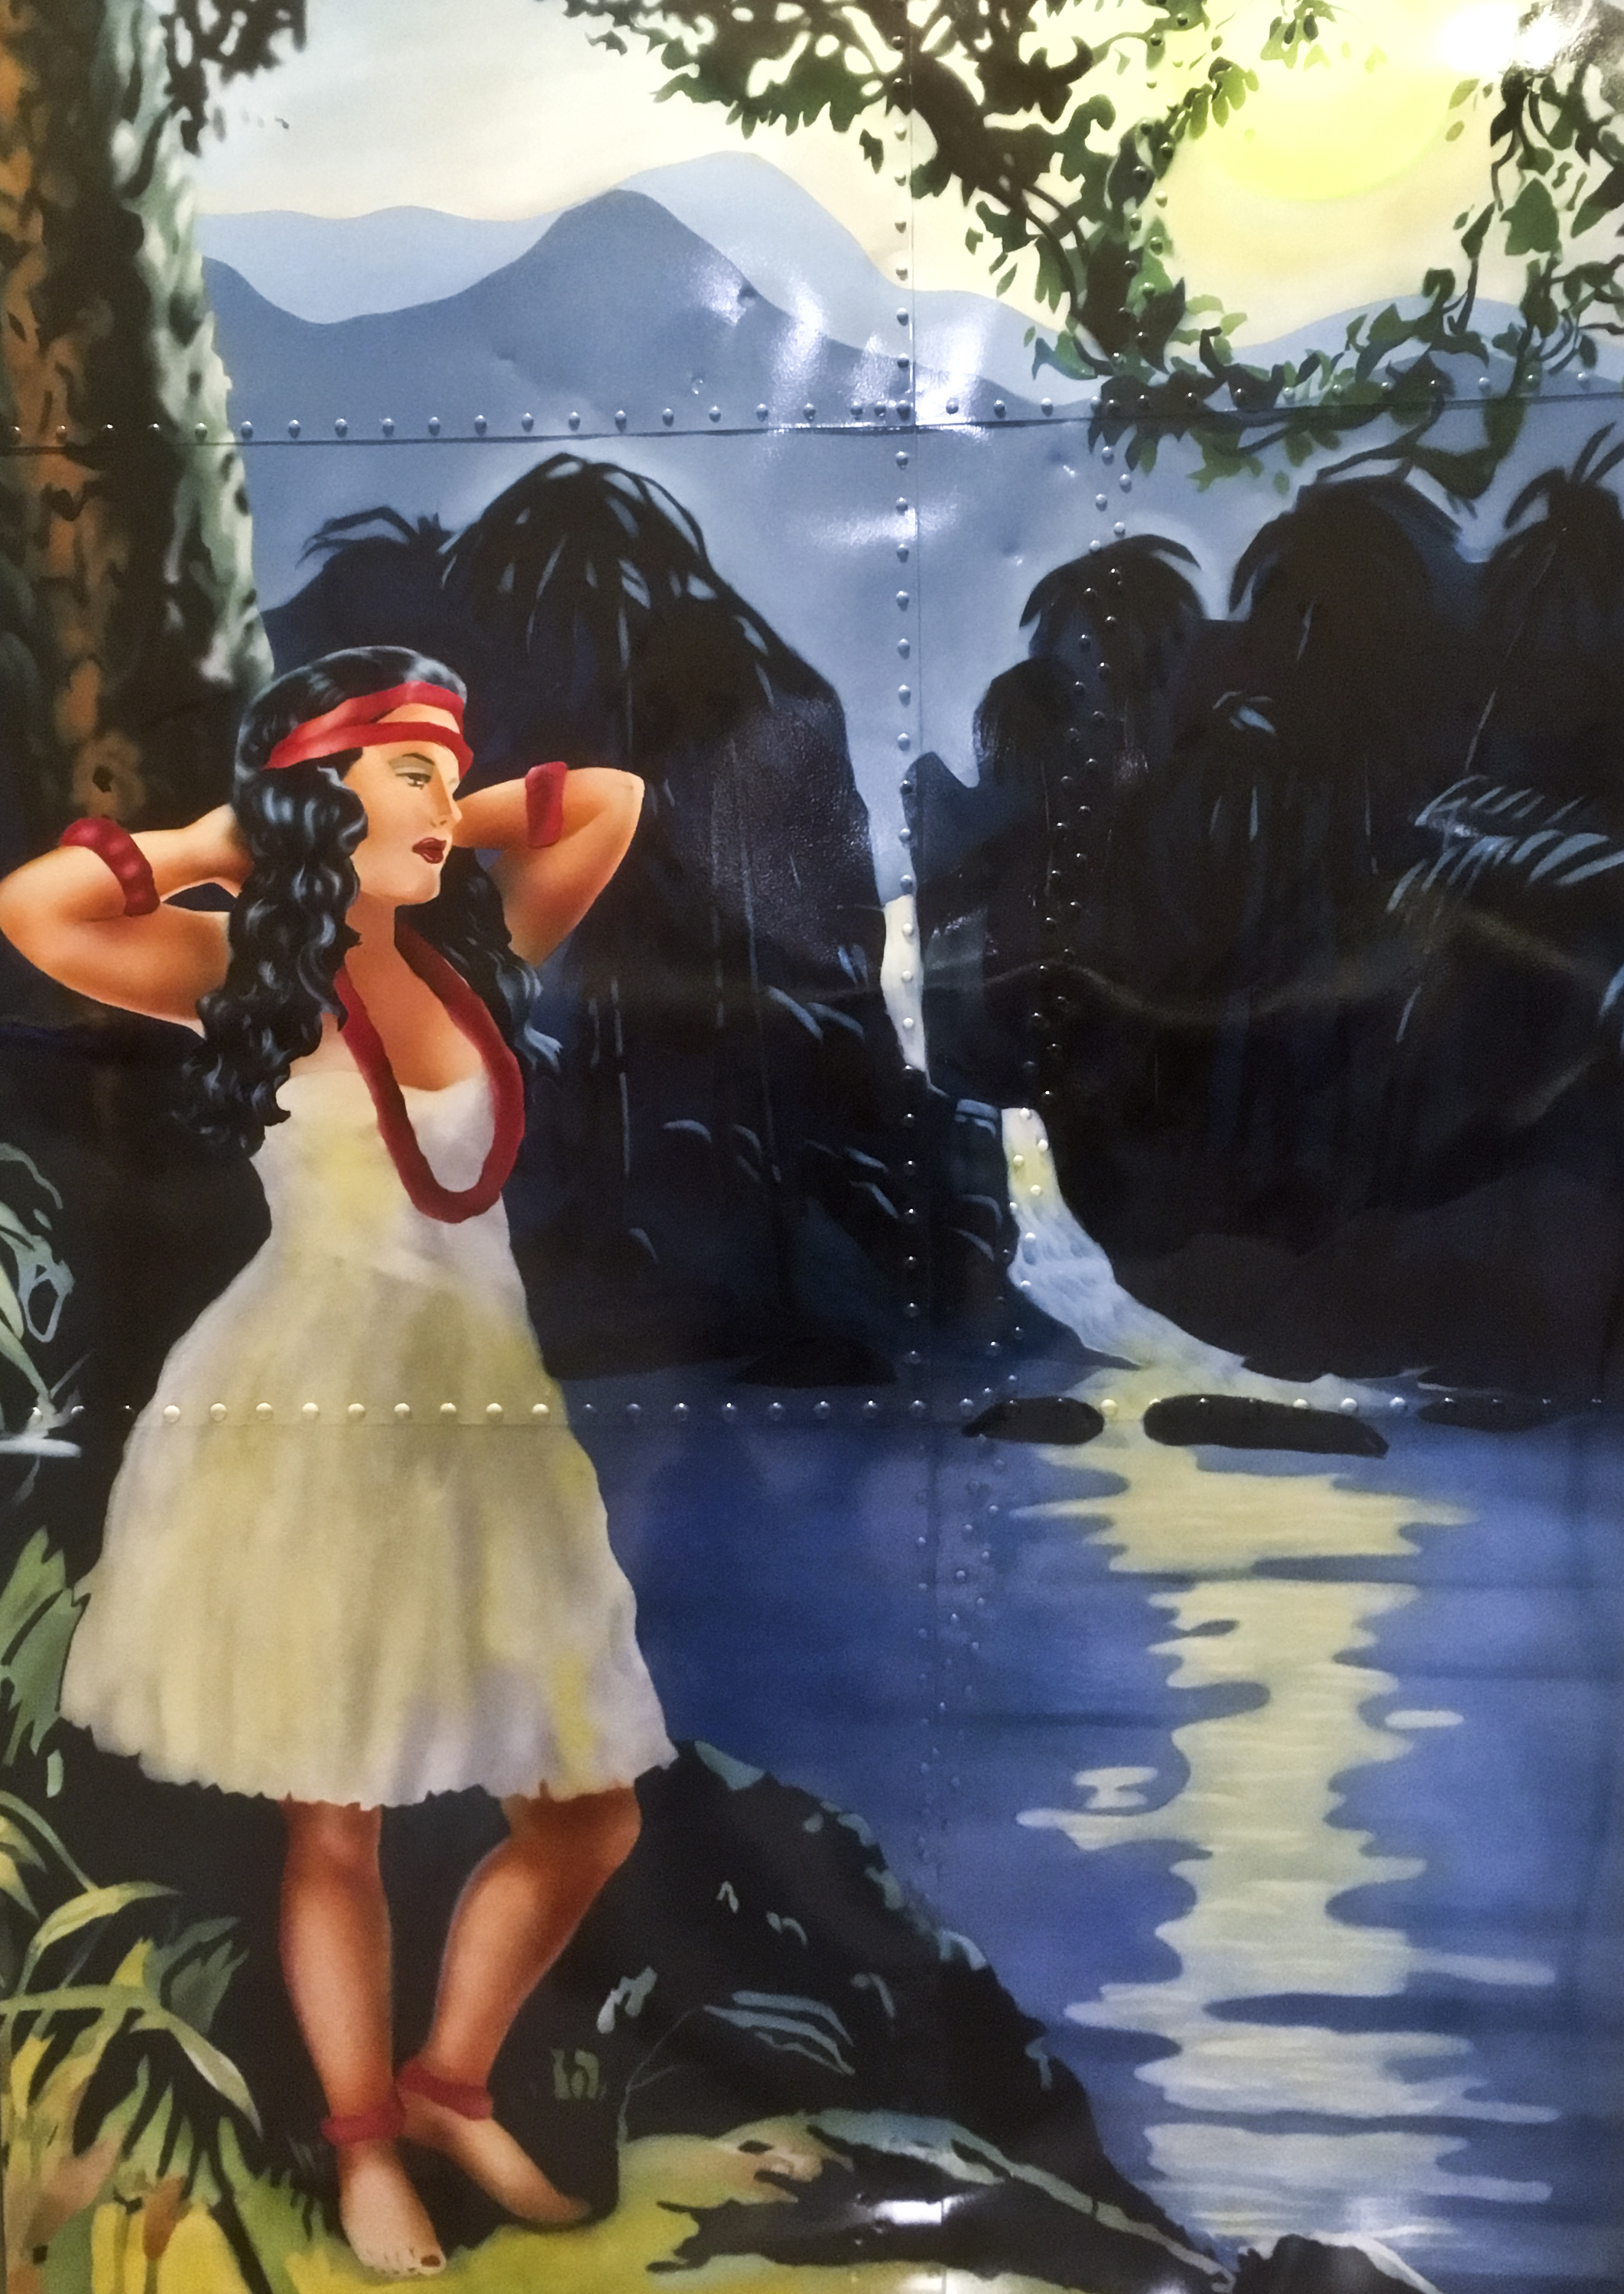 airbrushed image of woman in a tropical location